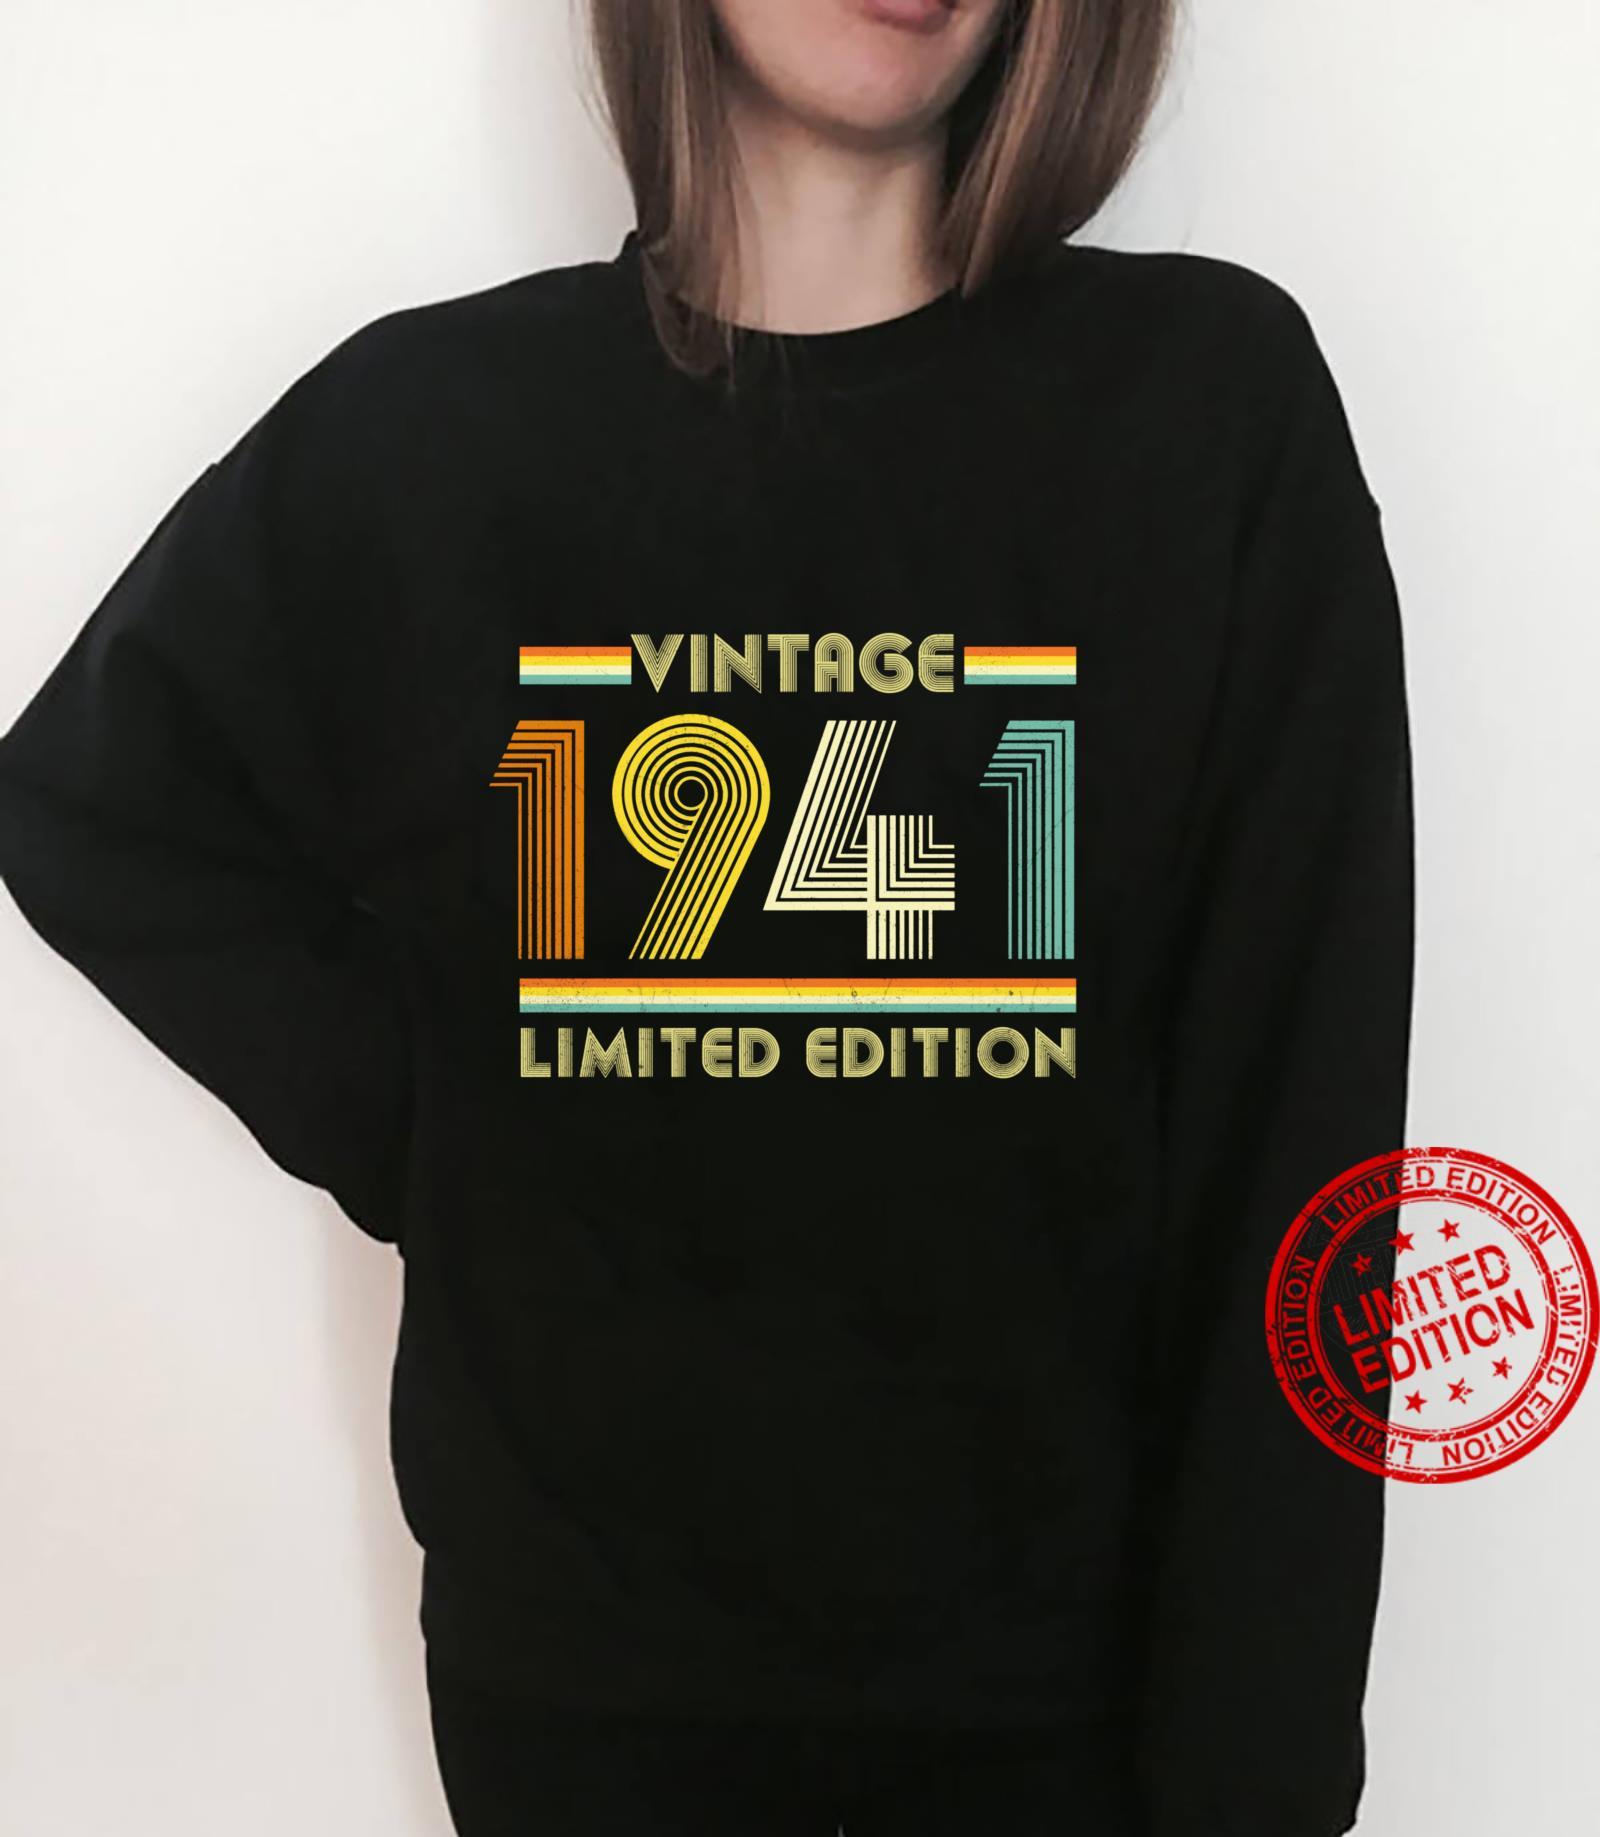 Vintage 1941 Shirt 80th Birthday for 80 Years Old Retro Shirt sweater